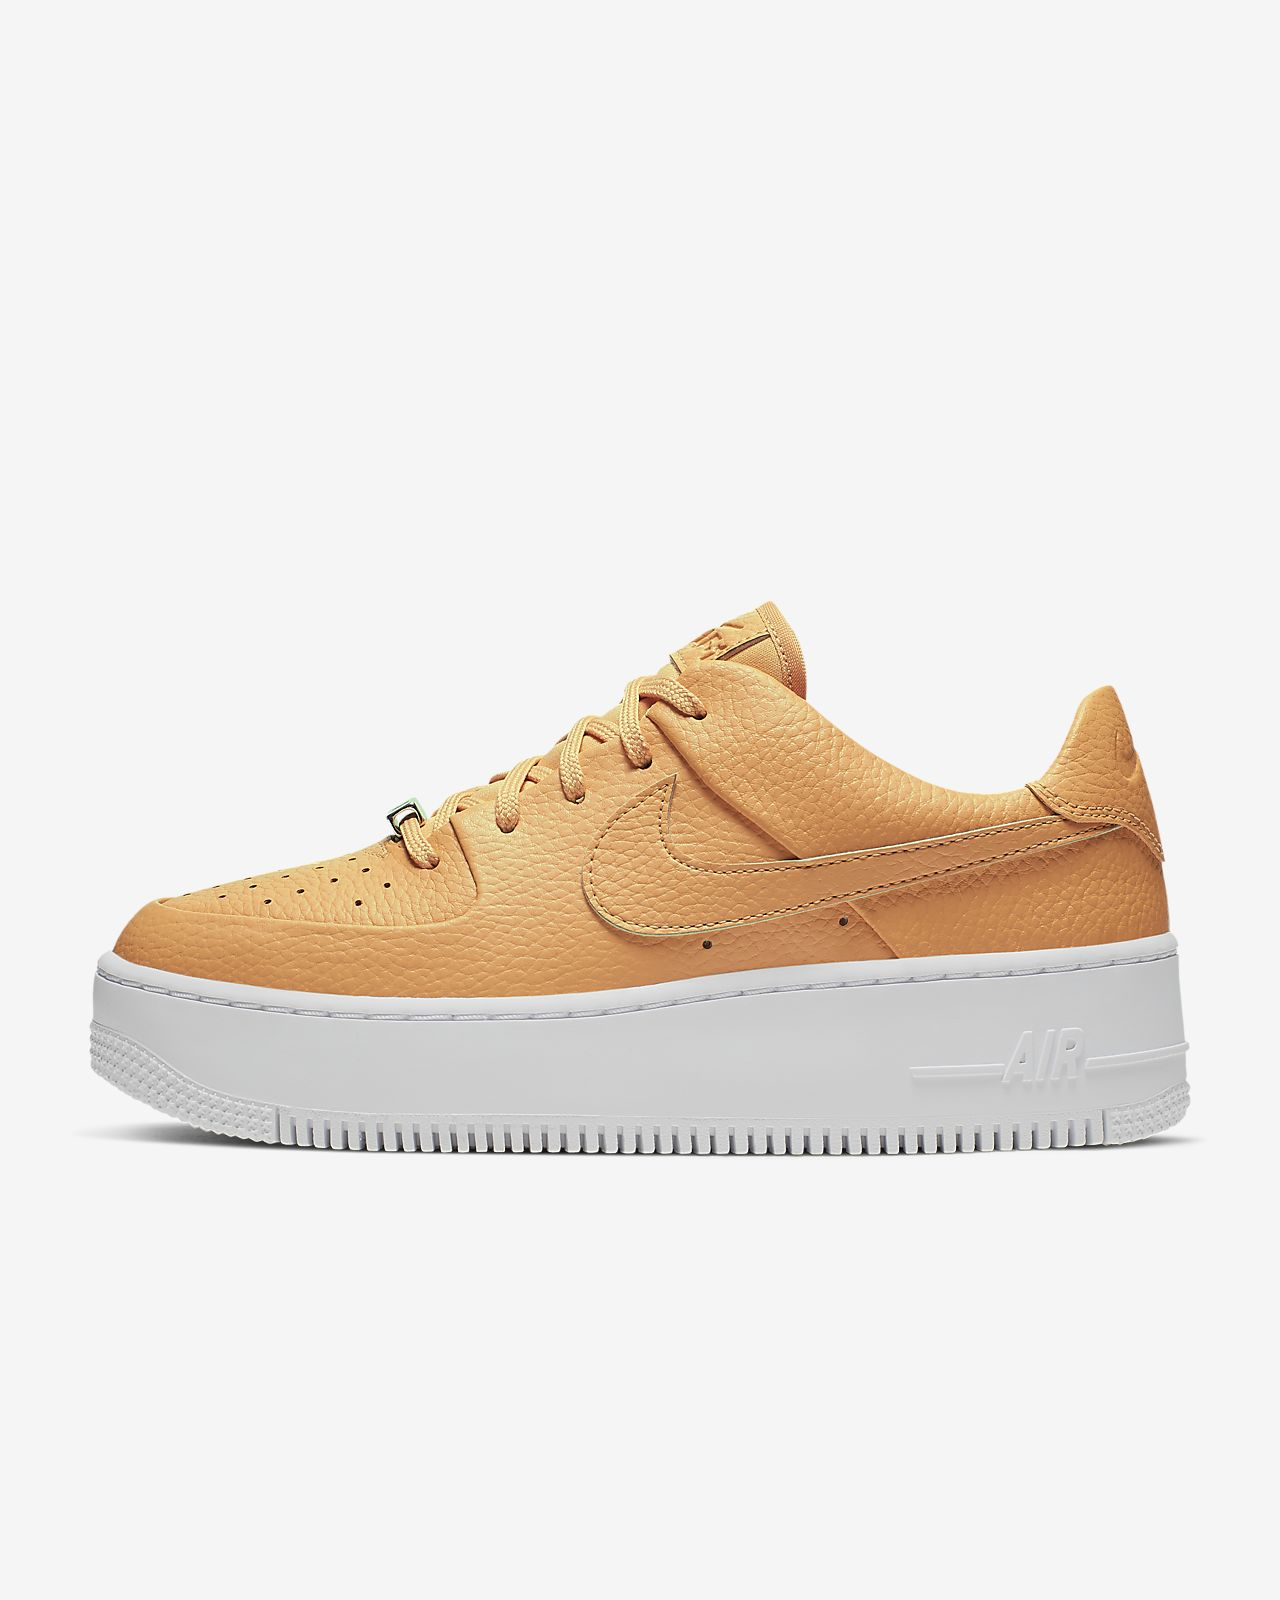 d8561c744e51a Nike Air Force 1 Sage Low Women's Shoe